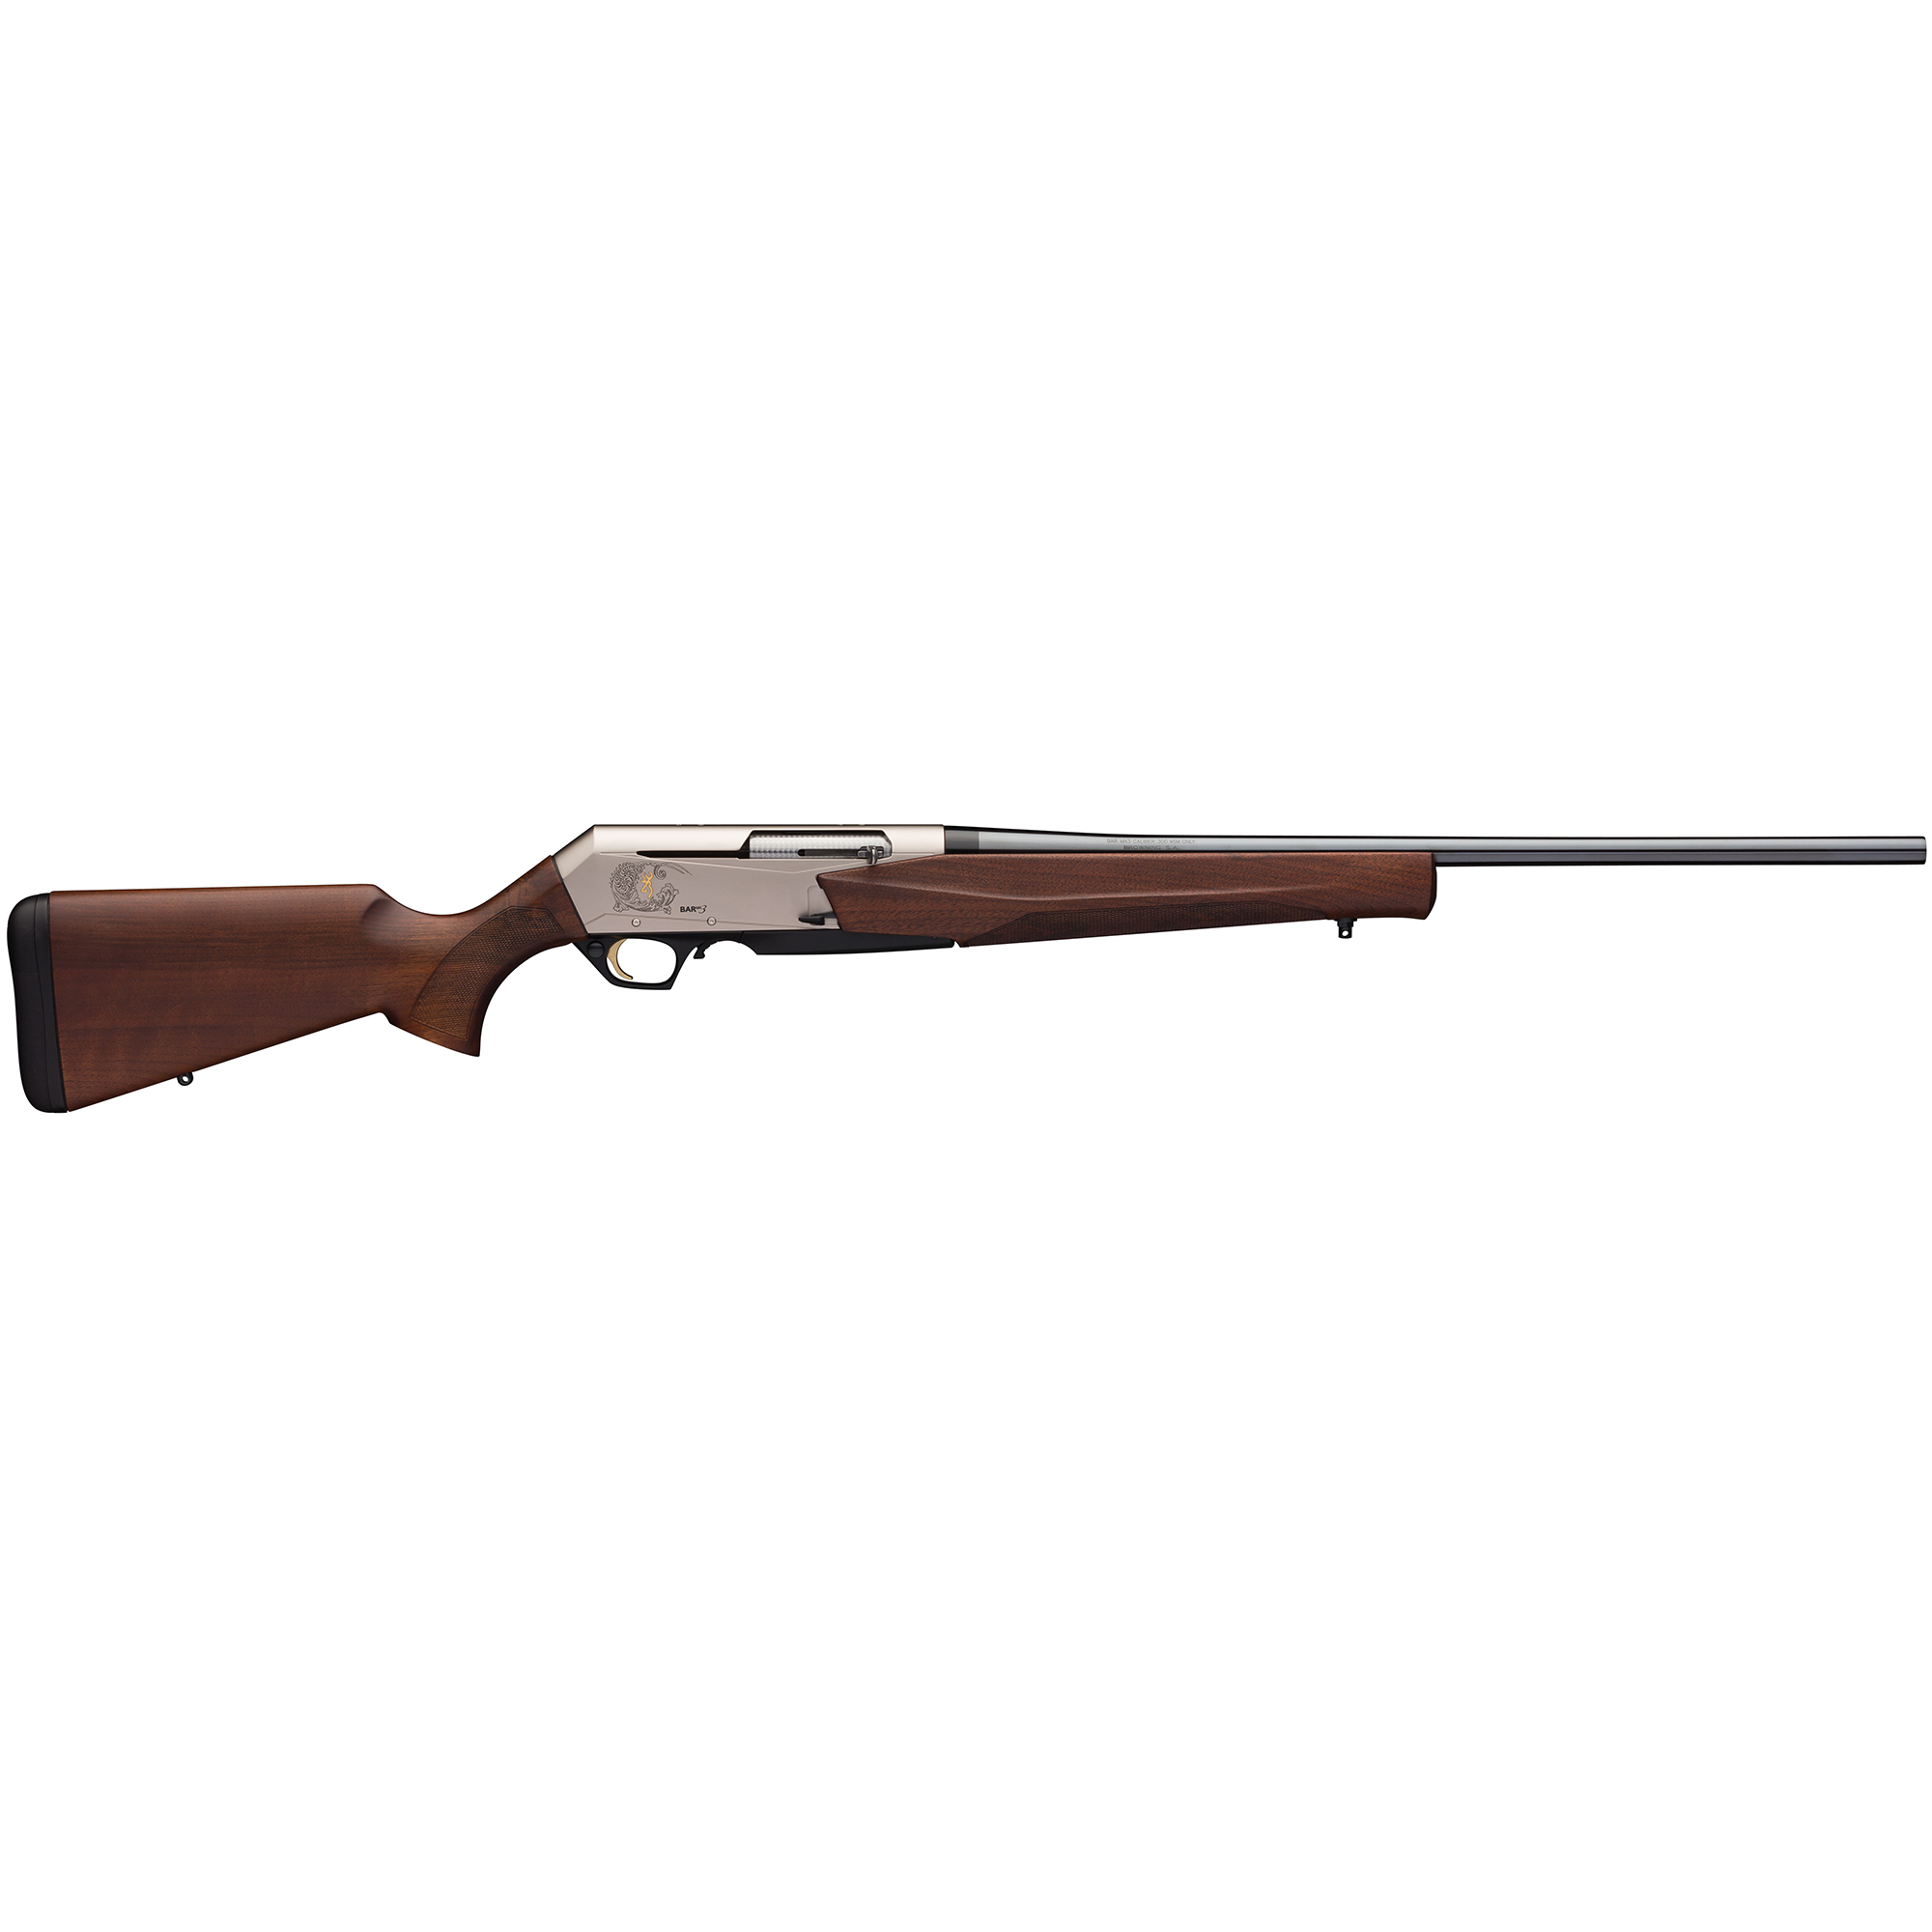 Browning BAR Mk 3 Centerfire Rifle, .30-06 Spring